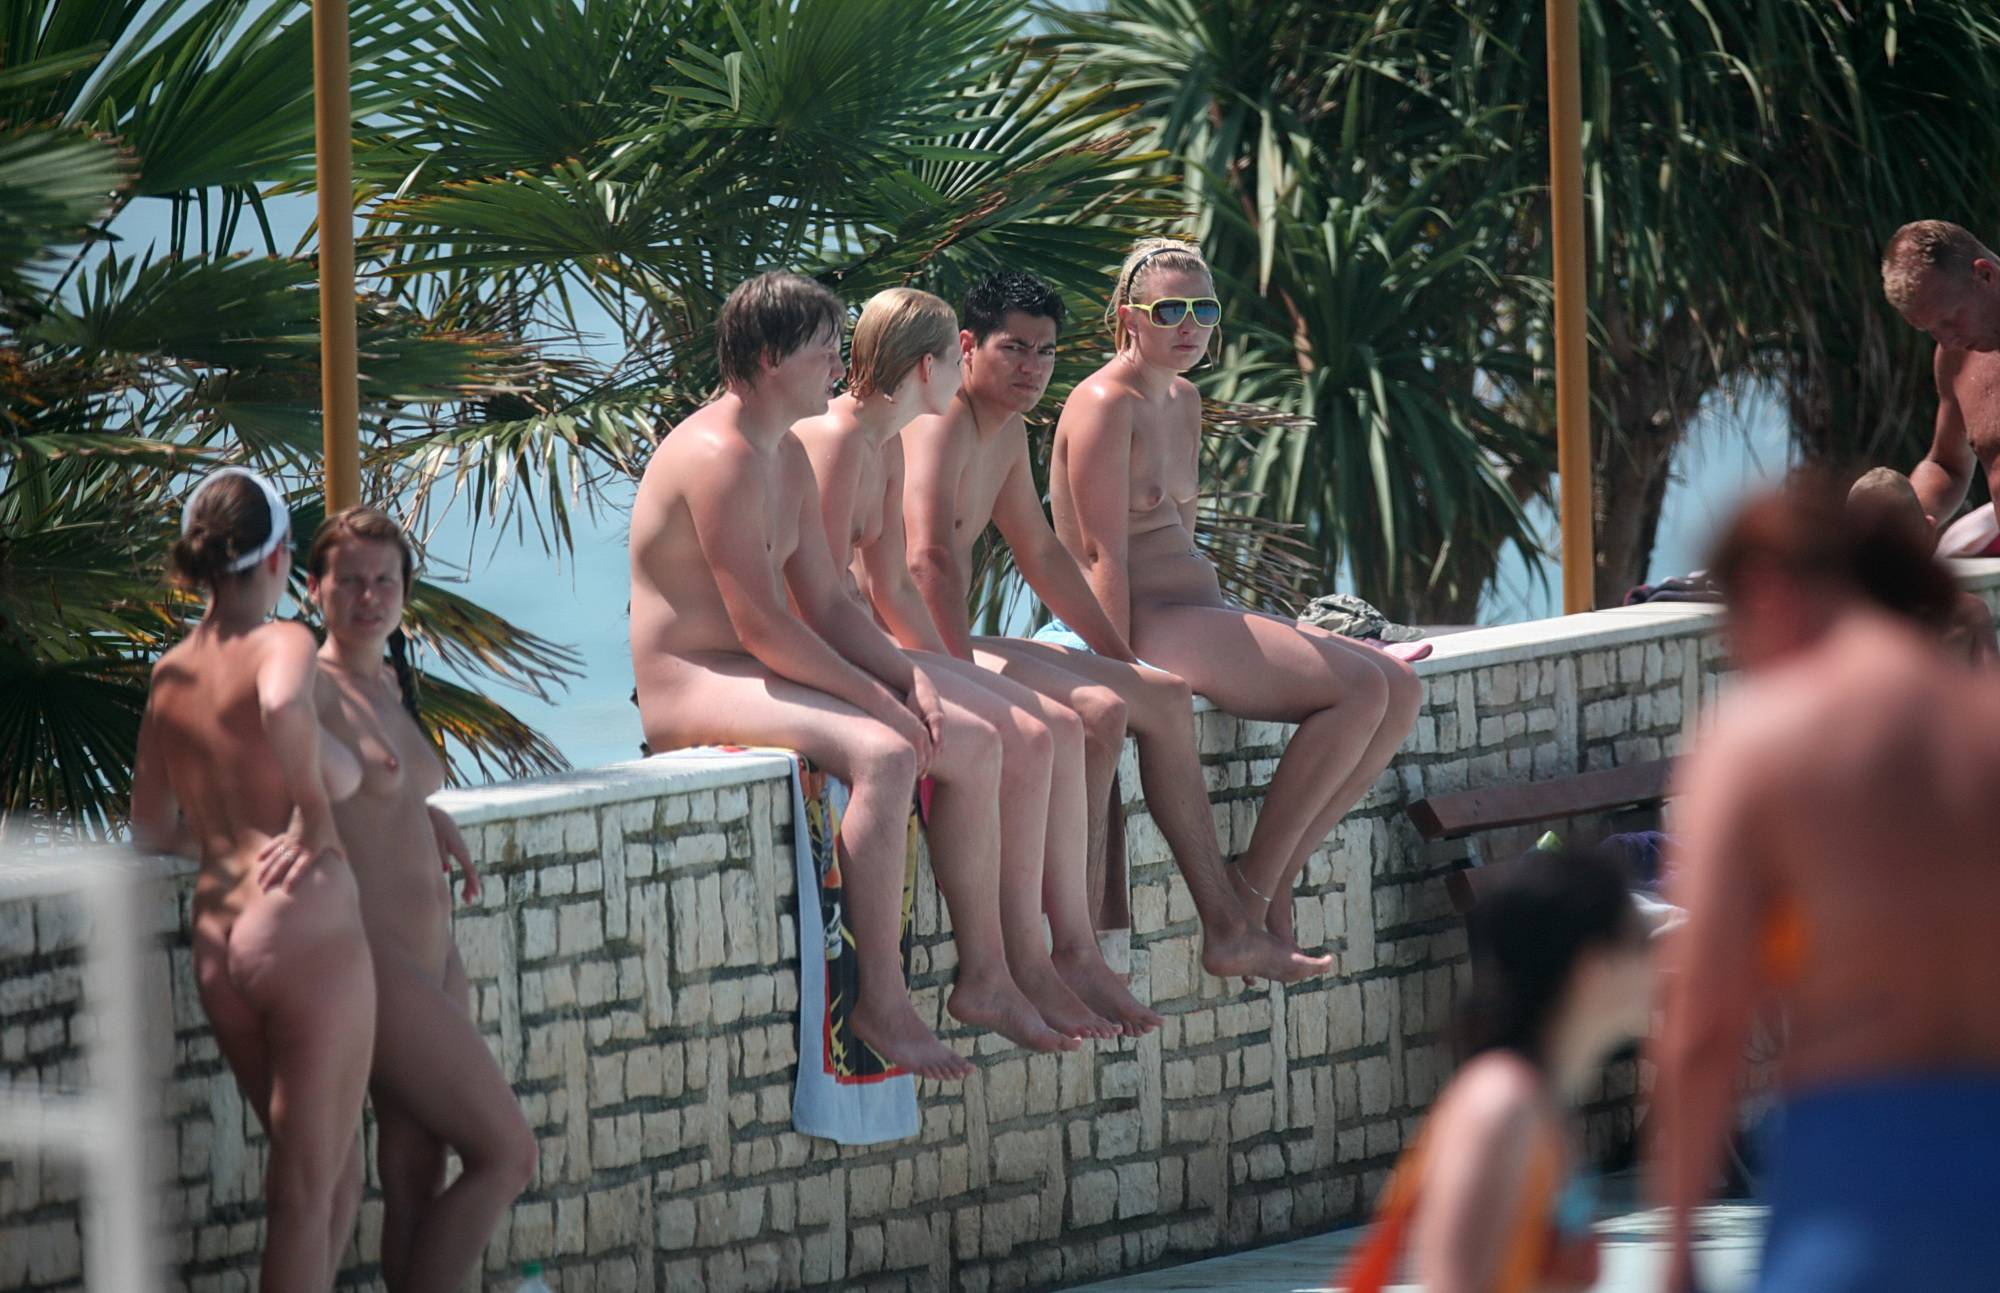 Nudist Pictures The Nudist Ledge Group - 1